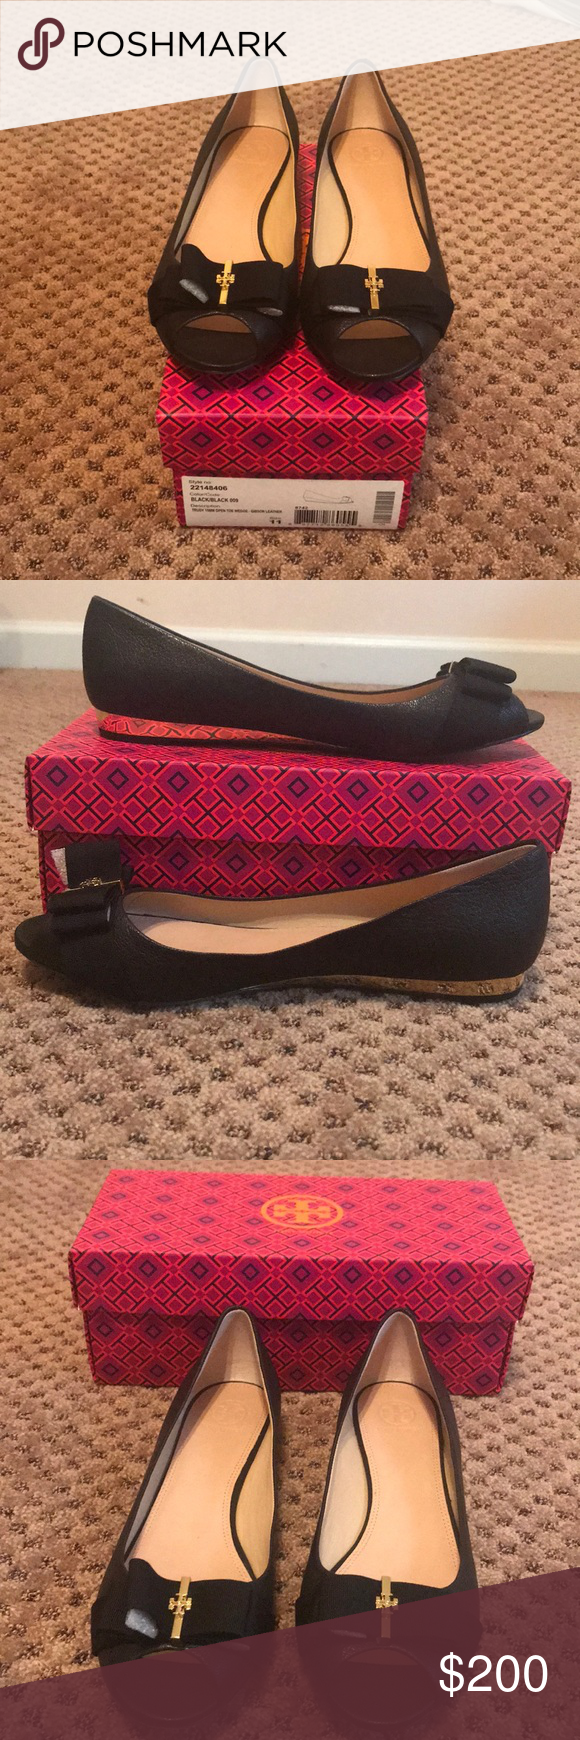 a11f9cf7ca36 Never-worn Trudy 15MM Open Toe Wedge Tory Burch Black Bow 15MM wedge Gold  heel Size 11 Tory Burch Shoes Wedges